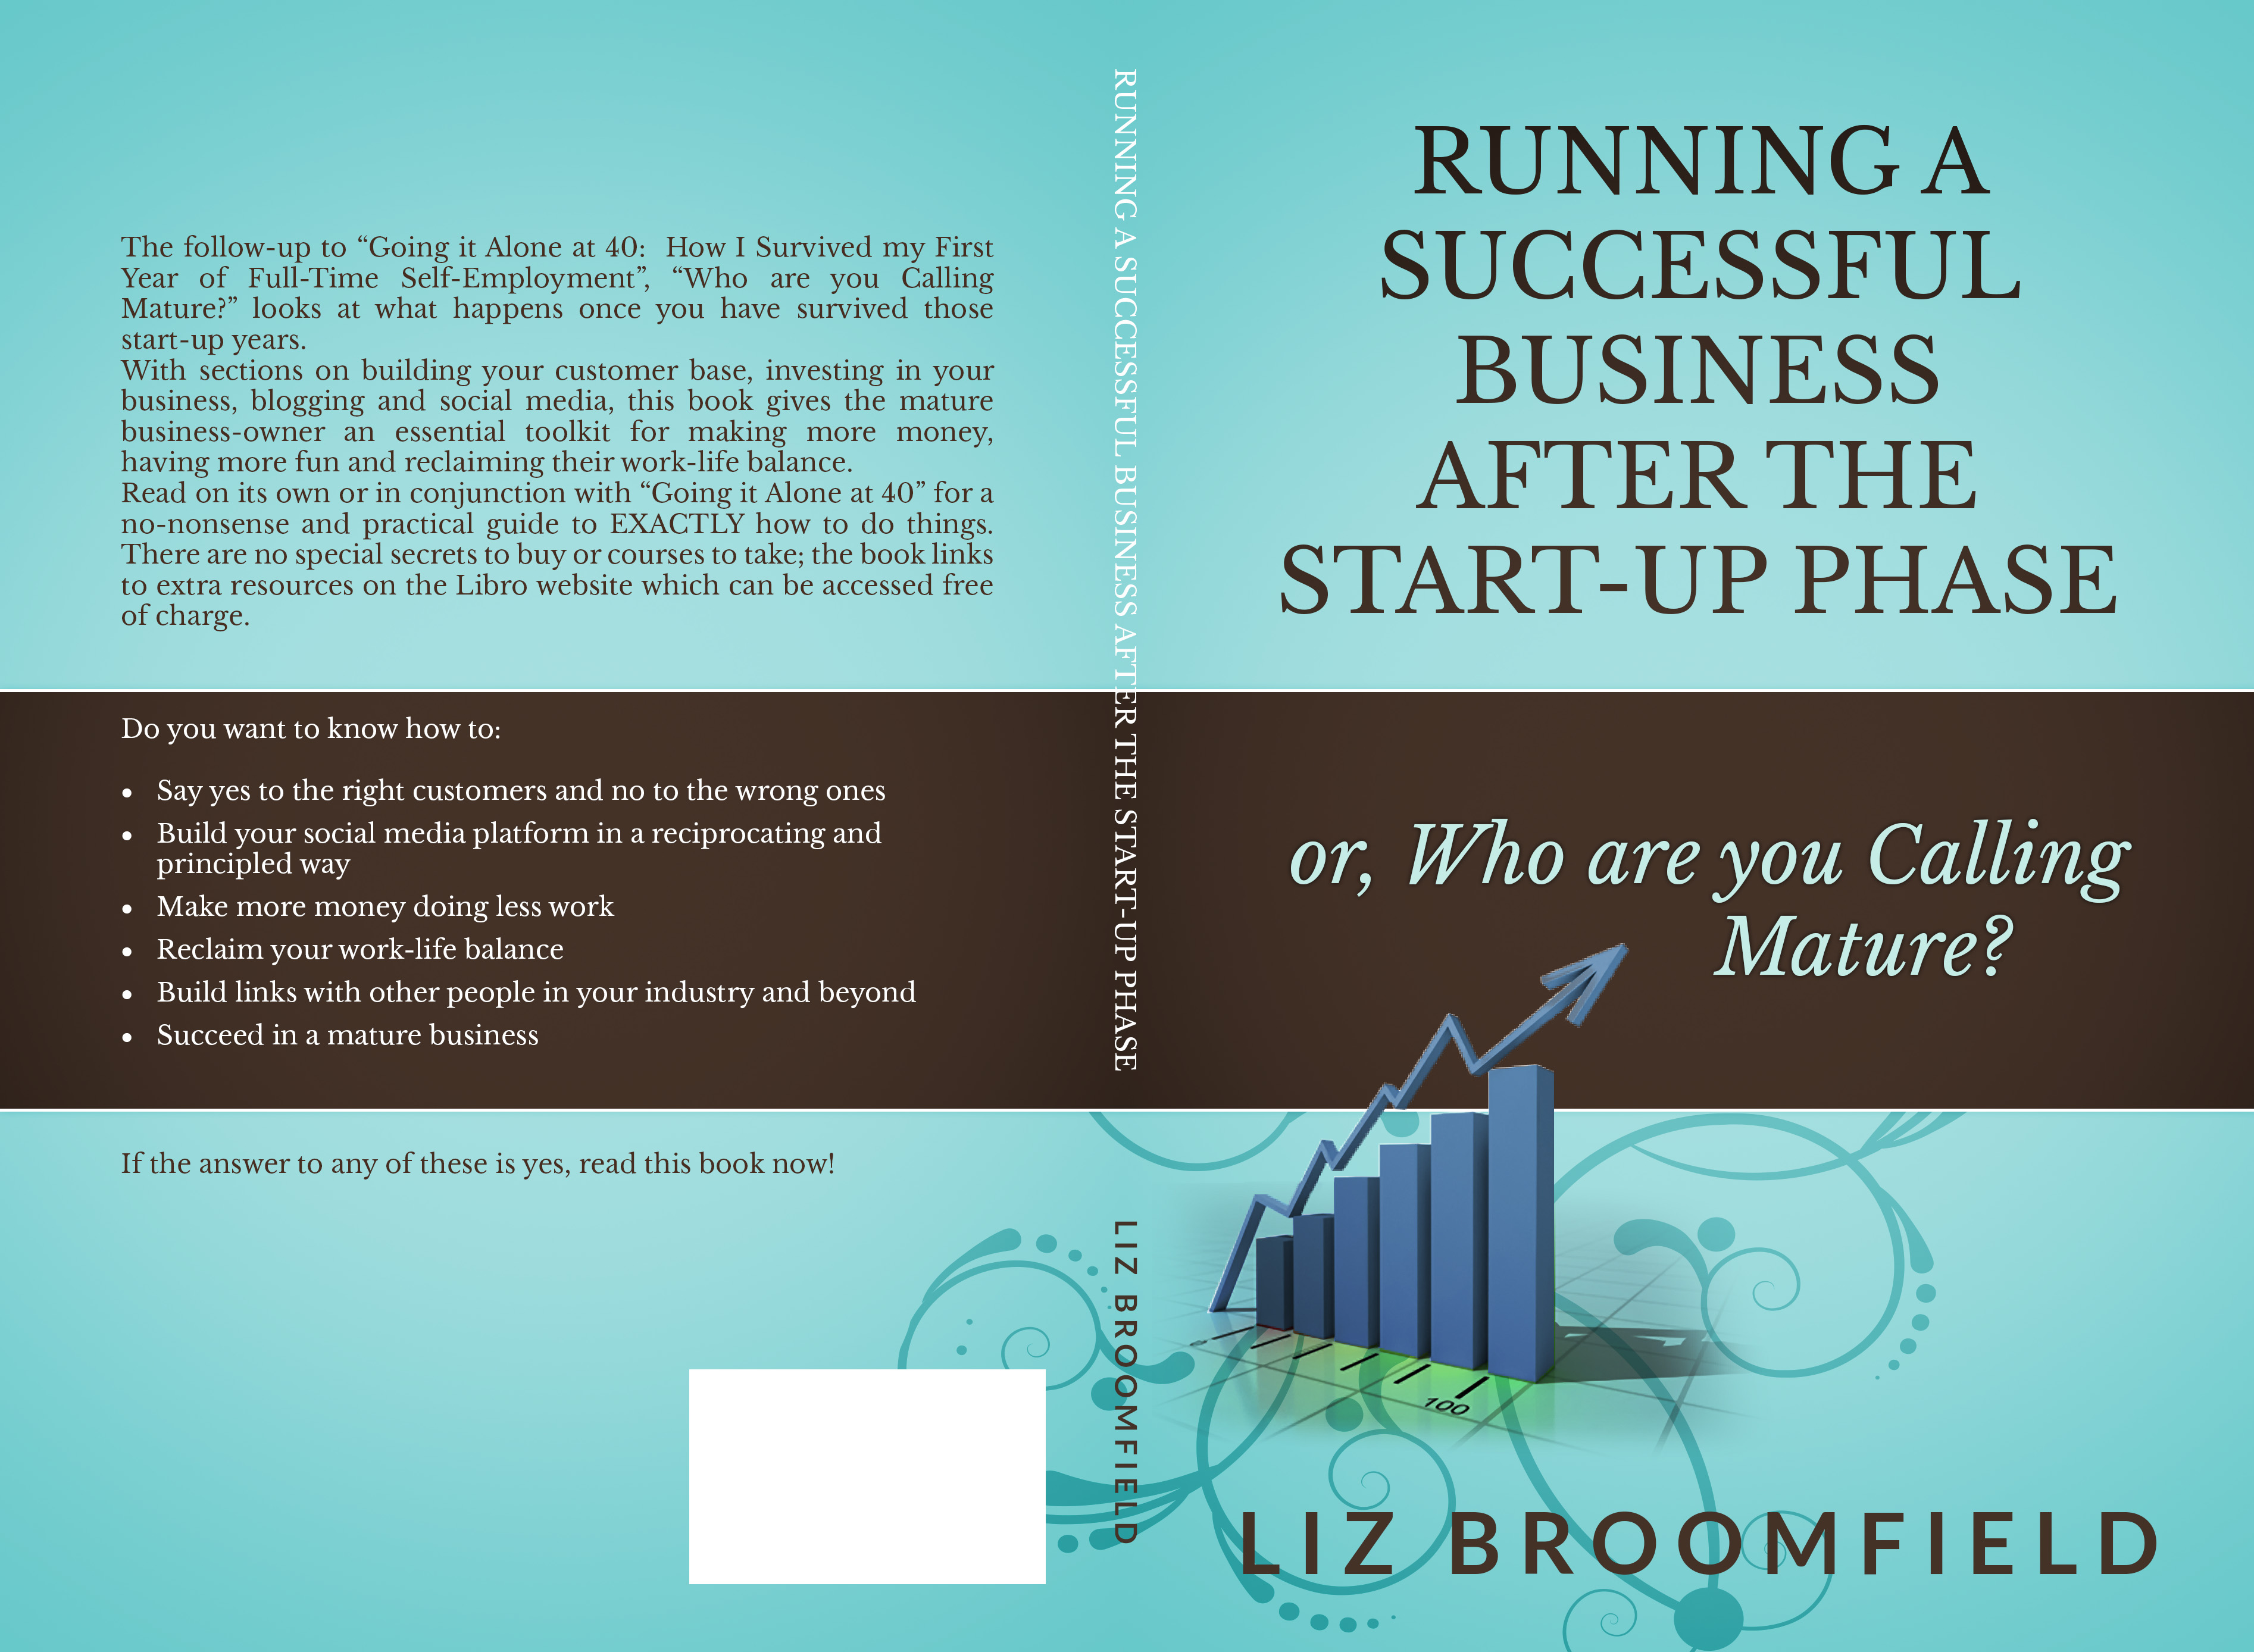 Business Book Covers : Book covers liz broomfield books